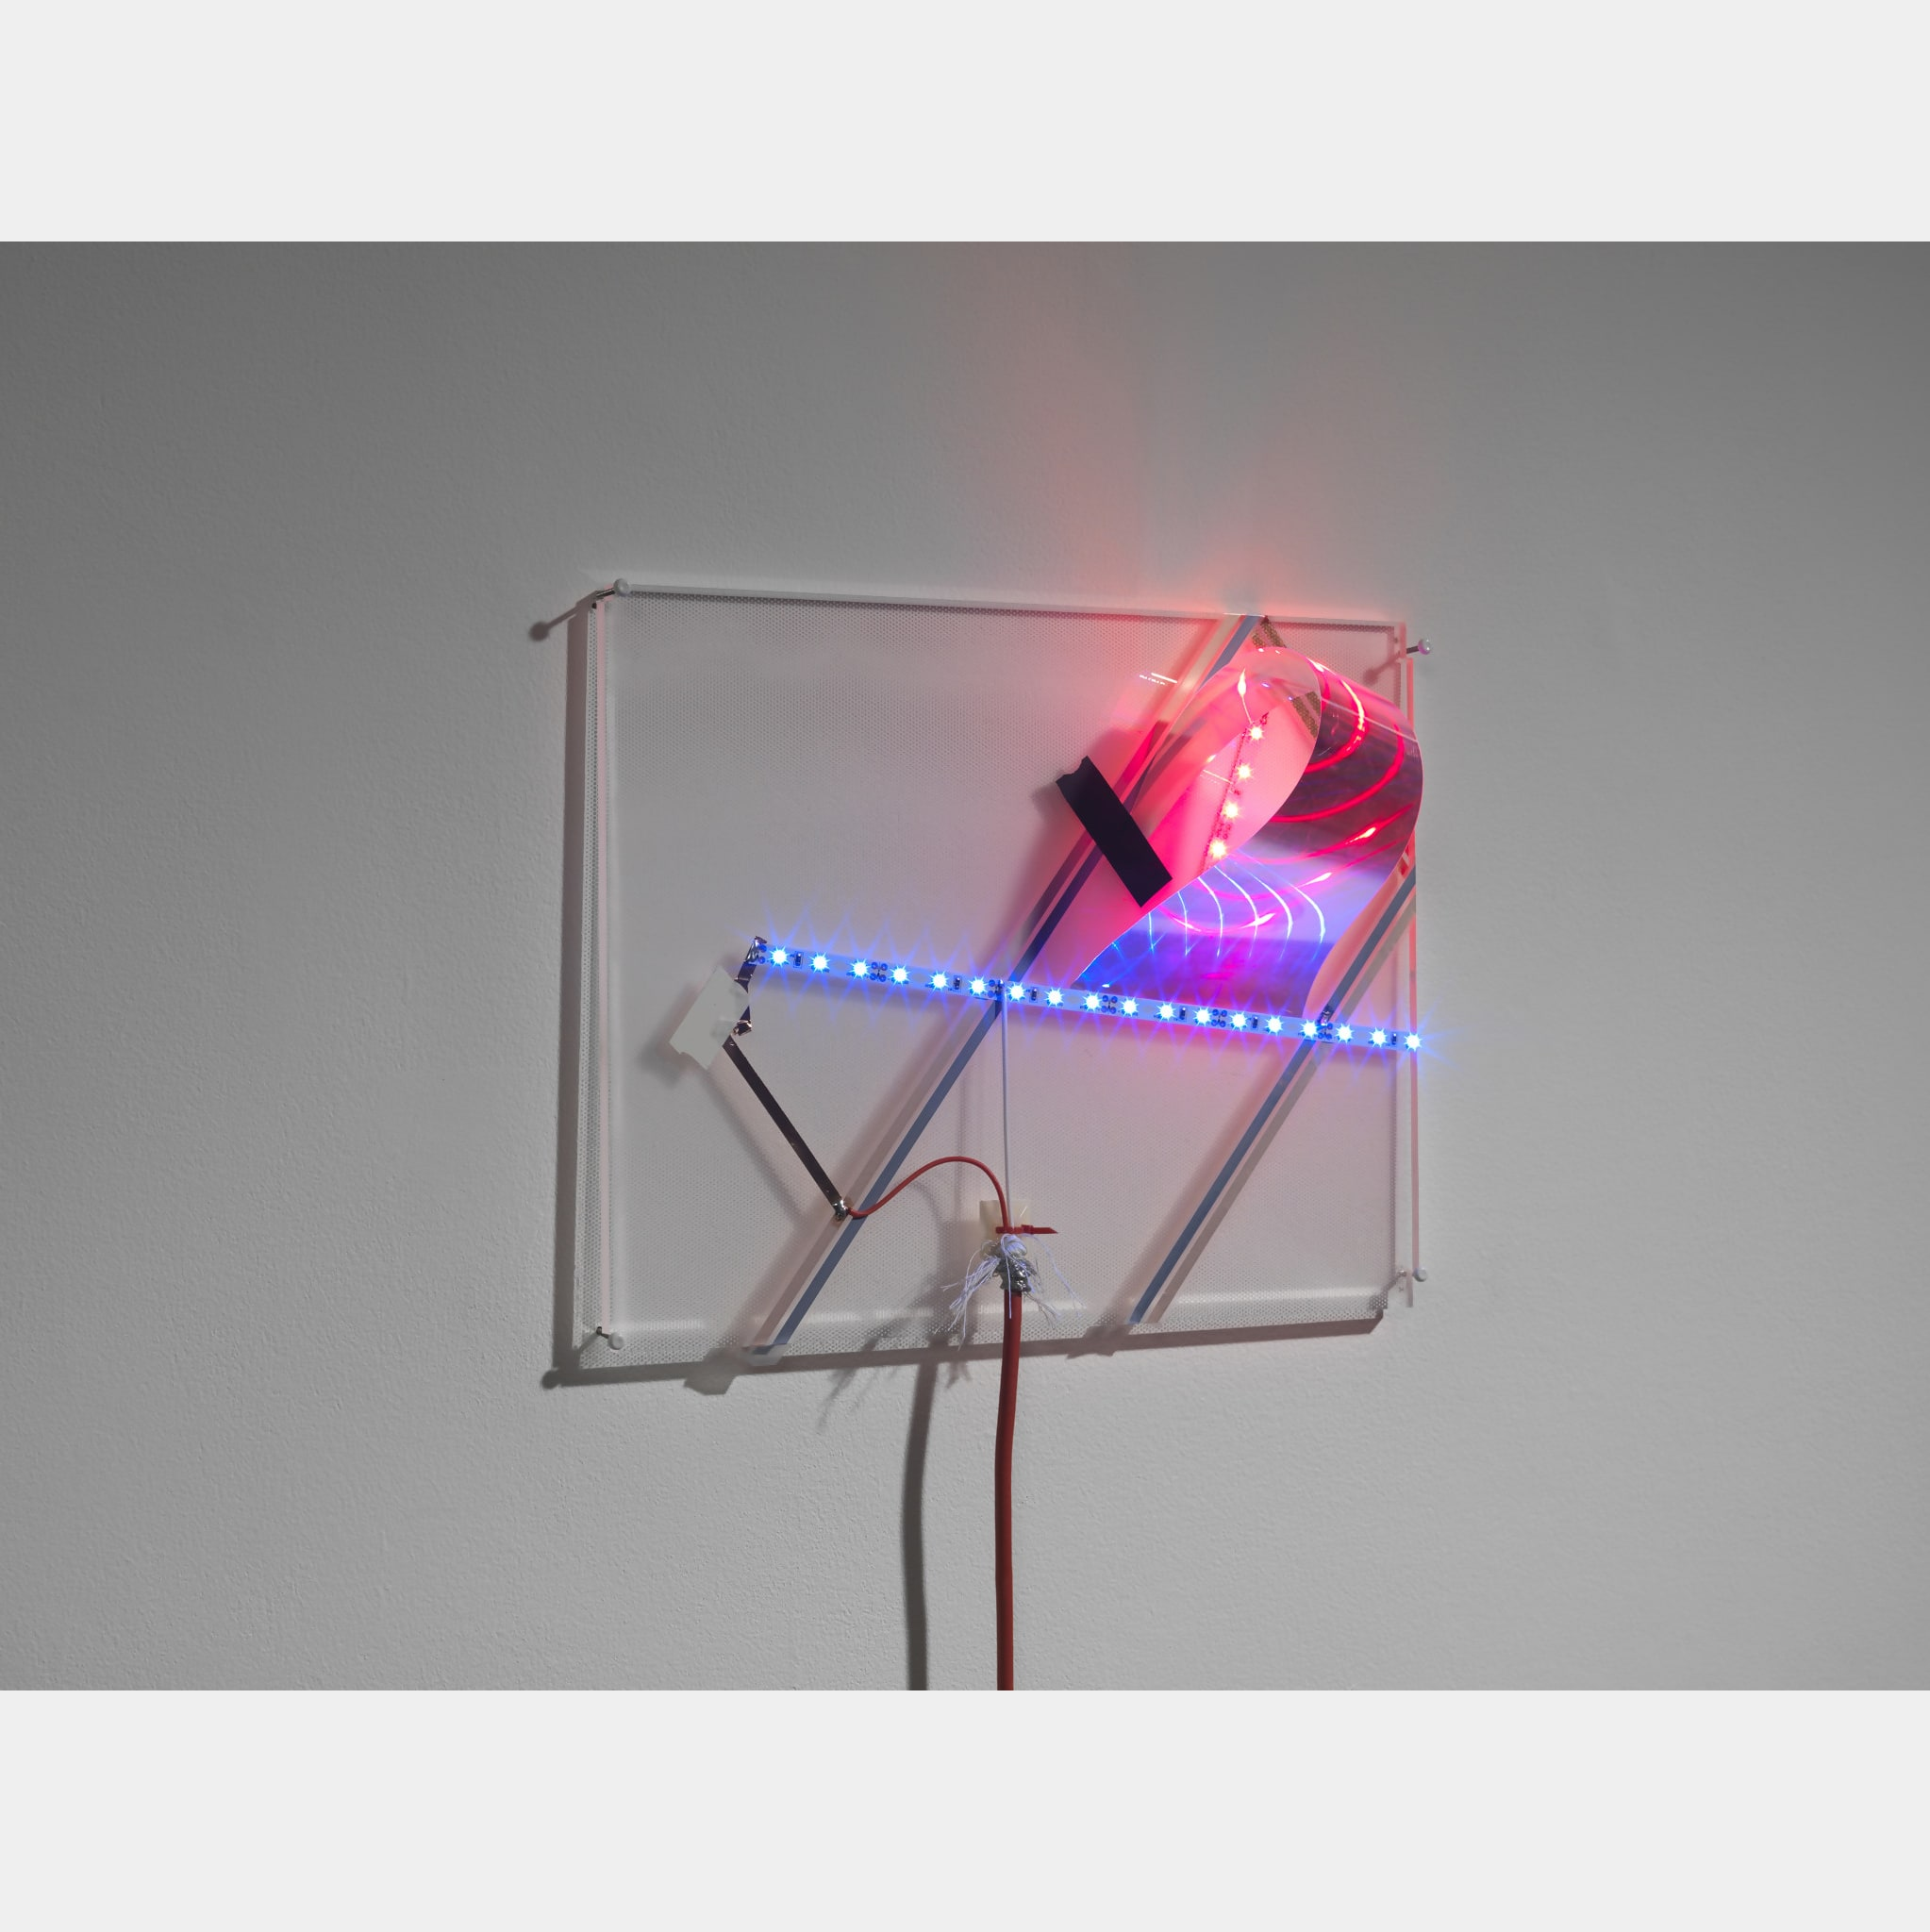 LED Circuit Composition 8 by Haroon Mirza